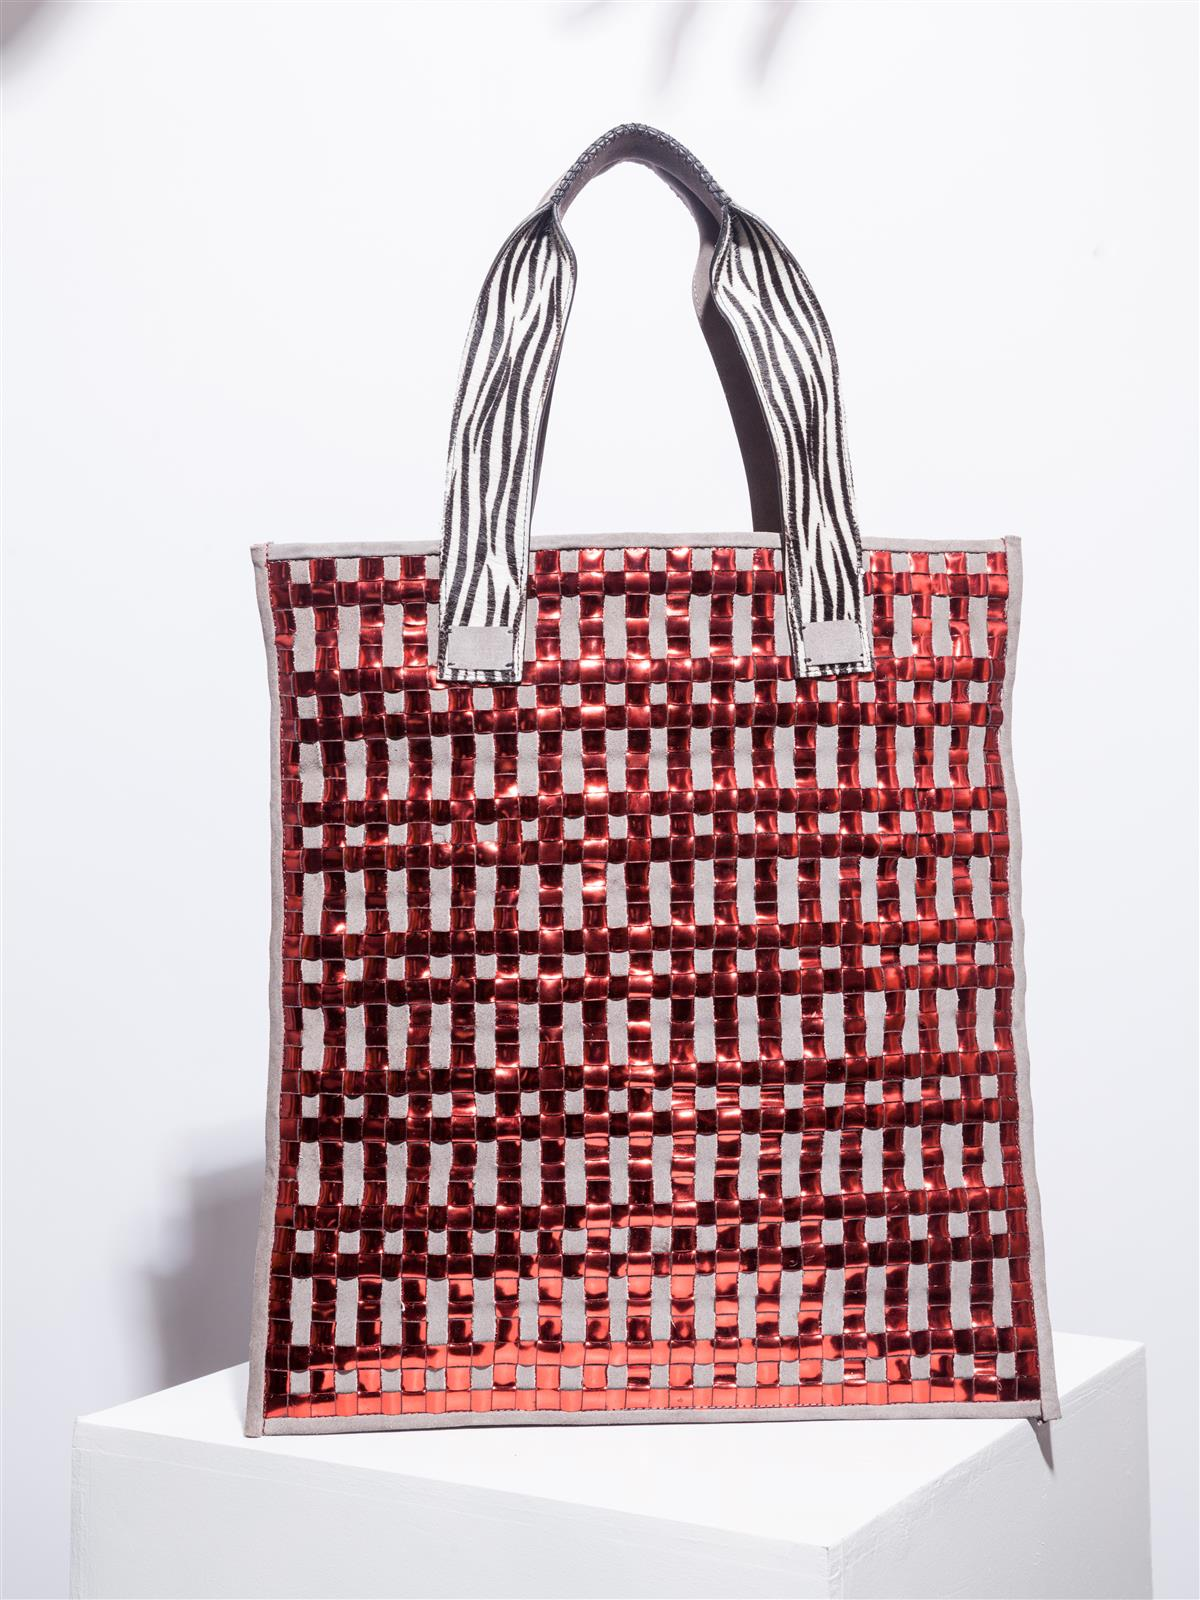 Stardust and mirror red tote with zebra details